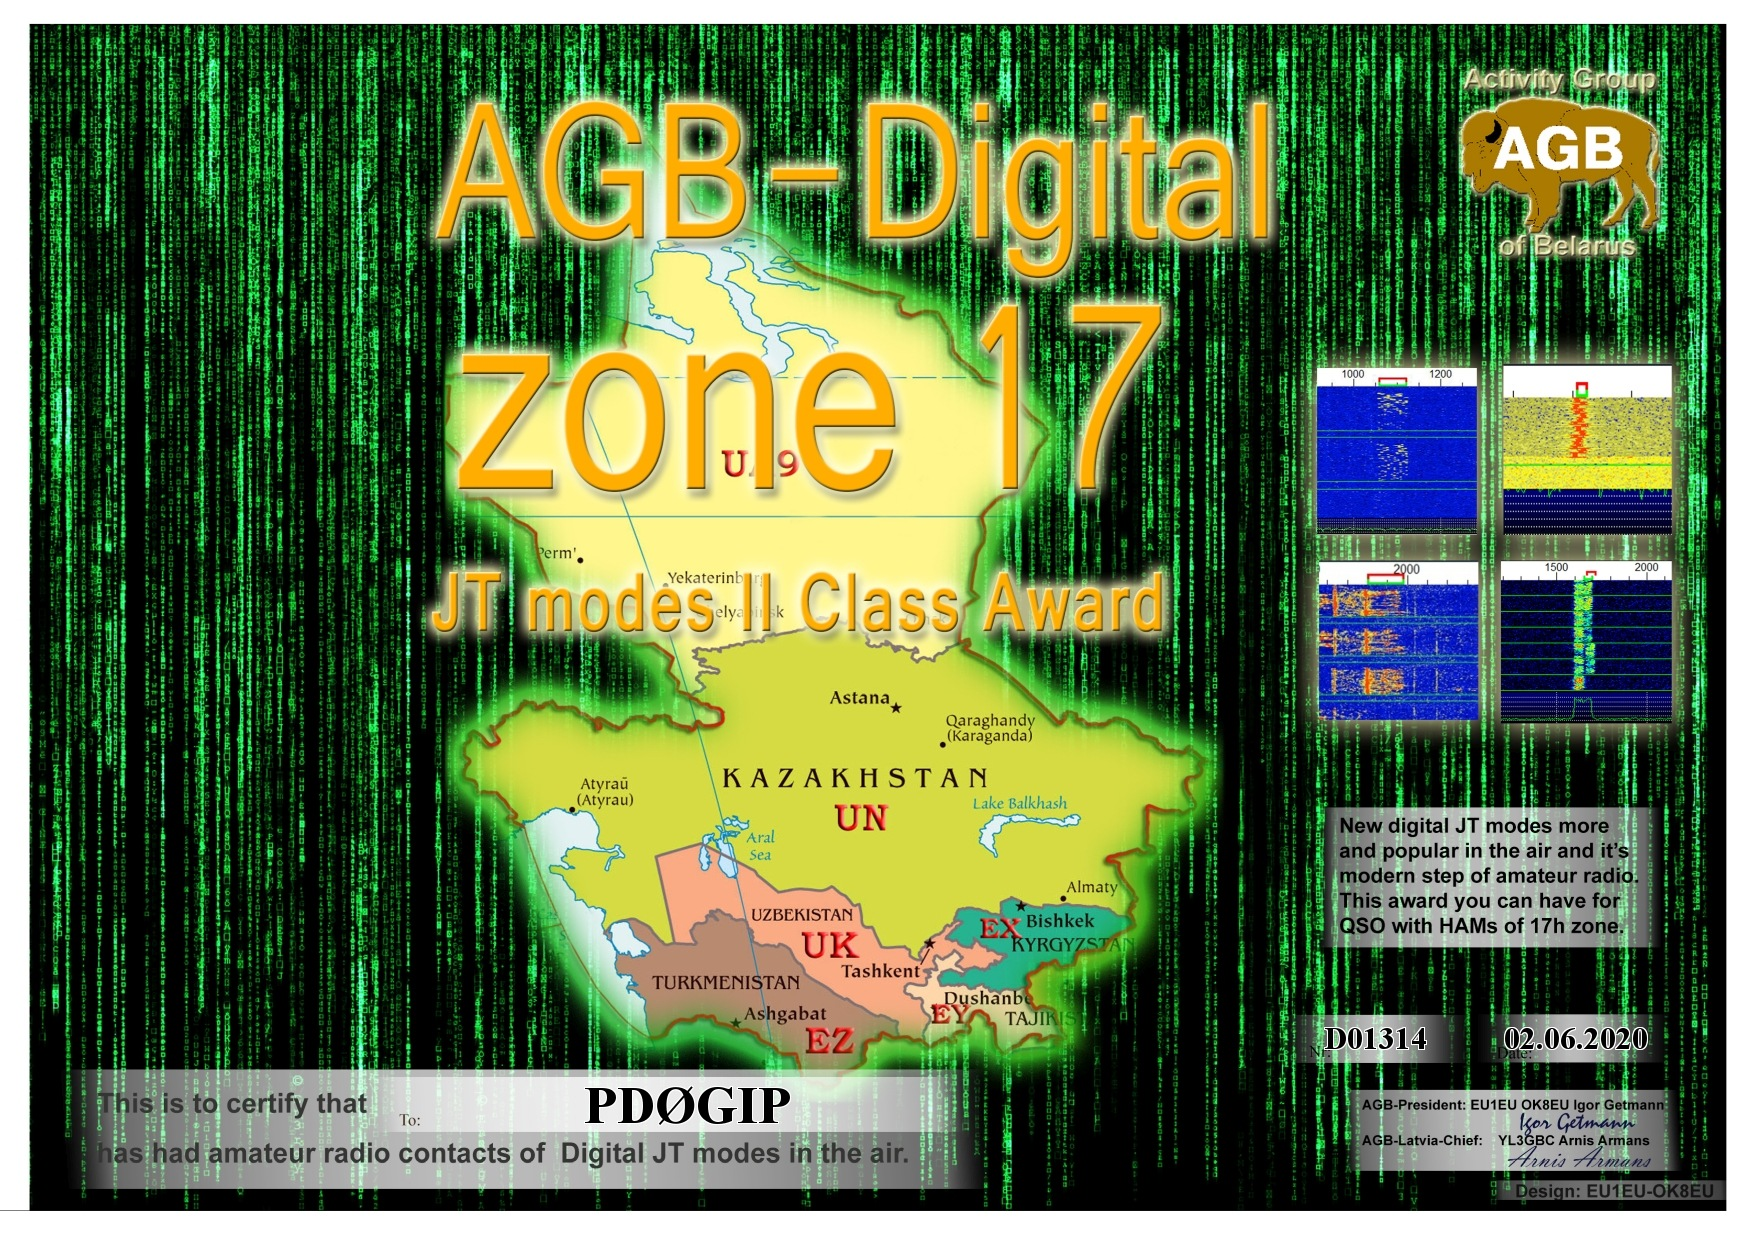 PD0GIP ZONE17 BASIC II AGB